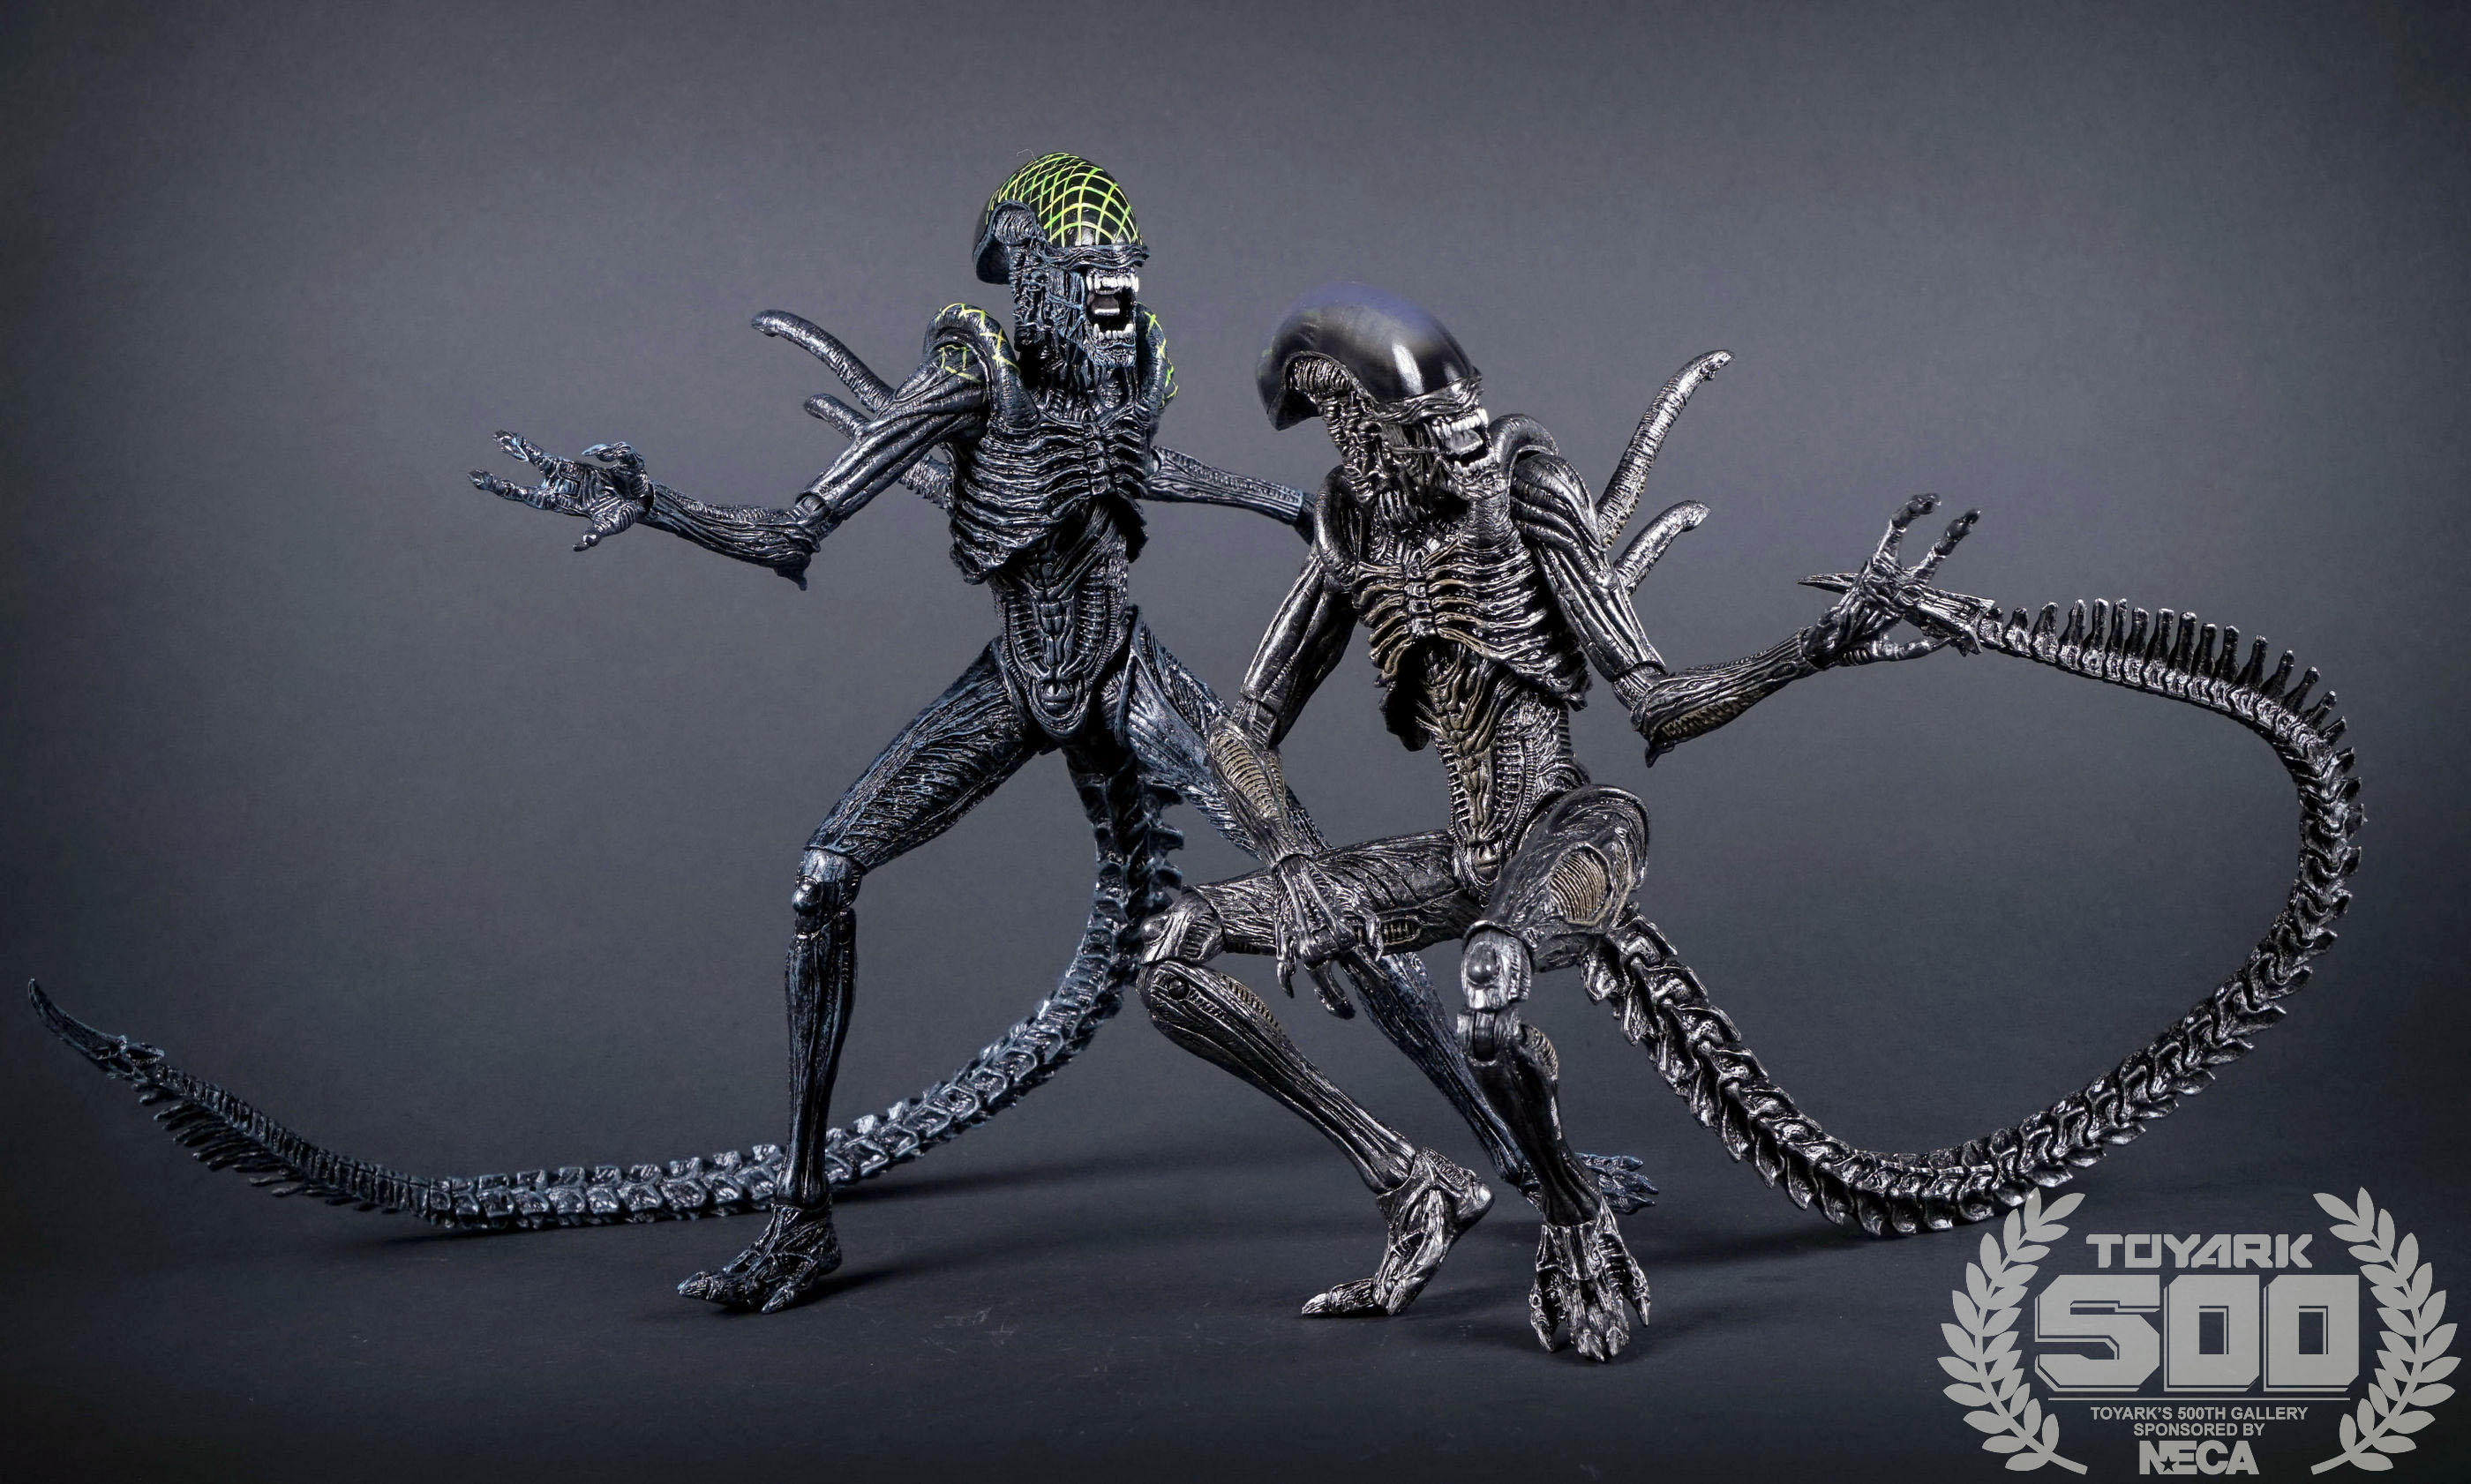 http://news.toyark.com/wp-content/uploads/sites/4/2016/01/Alien-Series-7-NECA-110.jpg